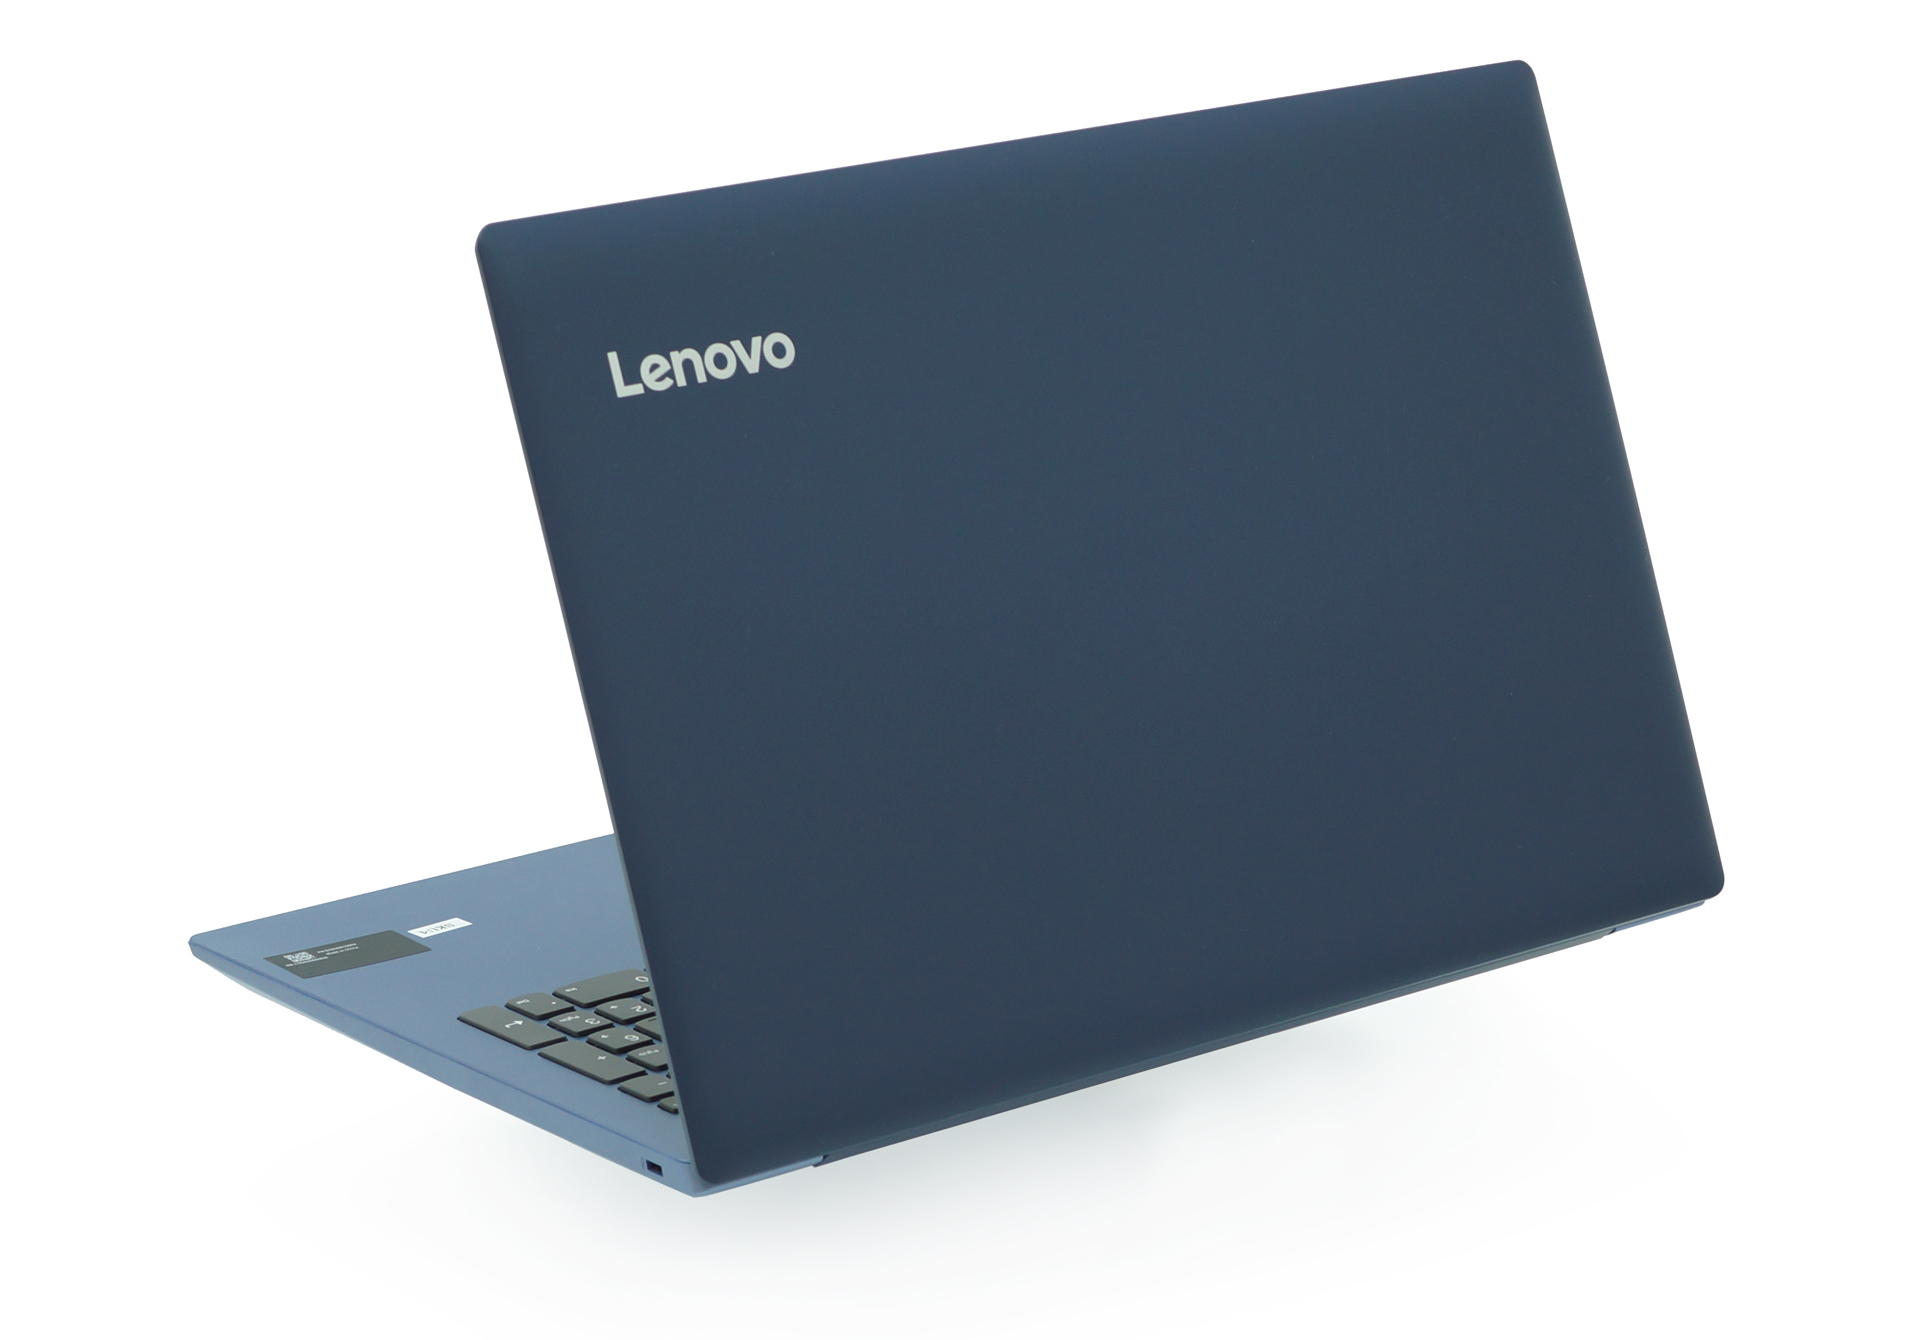 Lenovo Laptop Lenovo Ideapad 330 15ich Review Gaming Device For The Average User